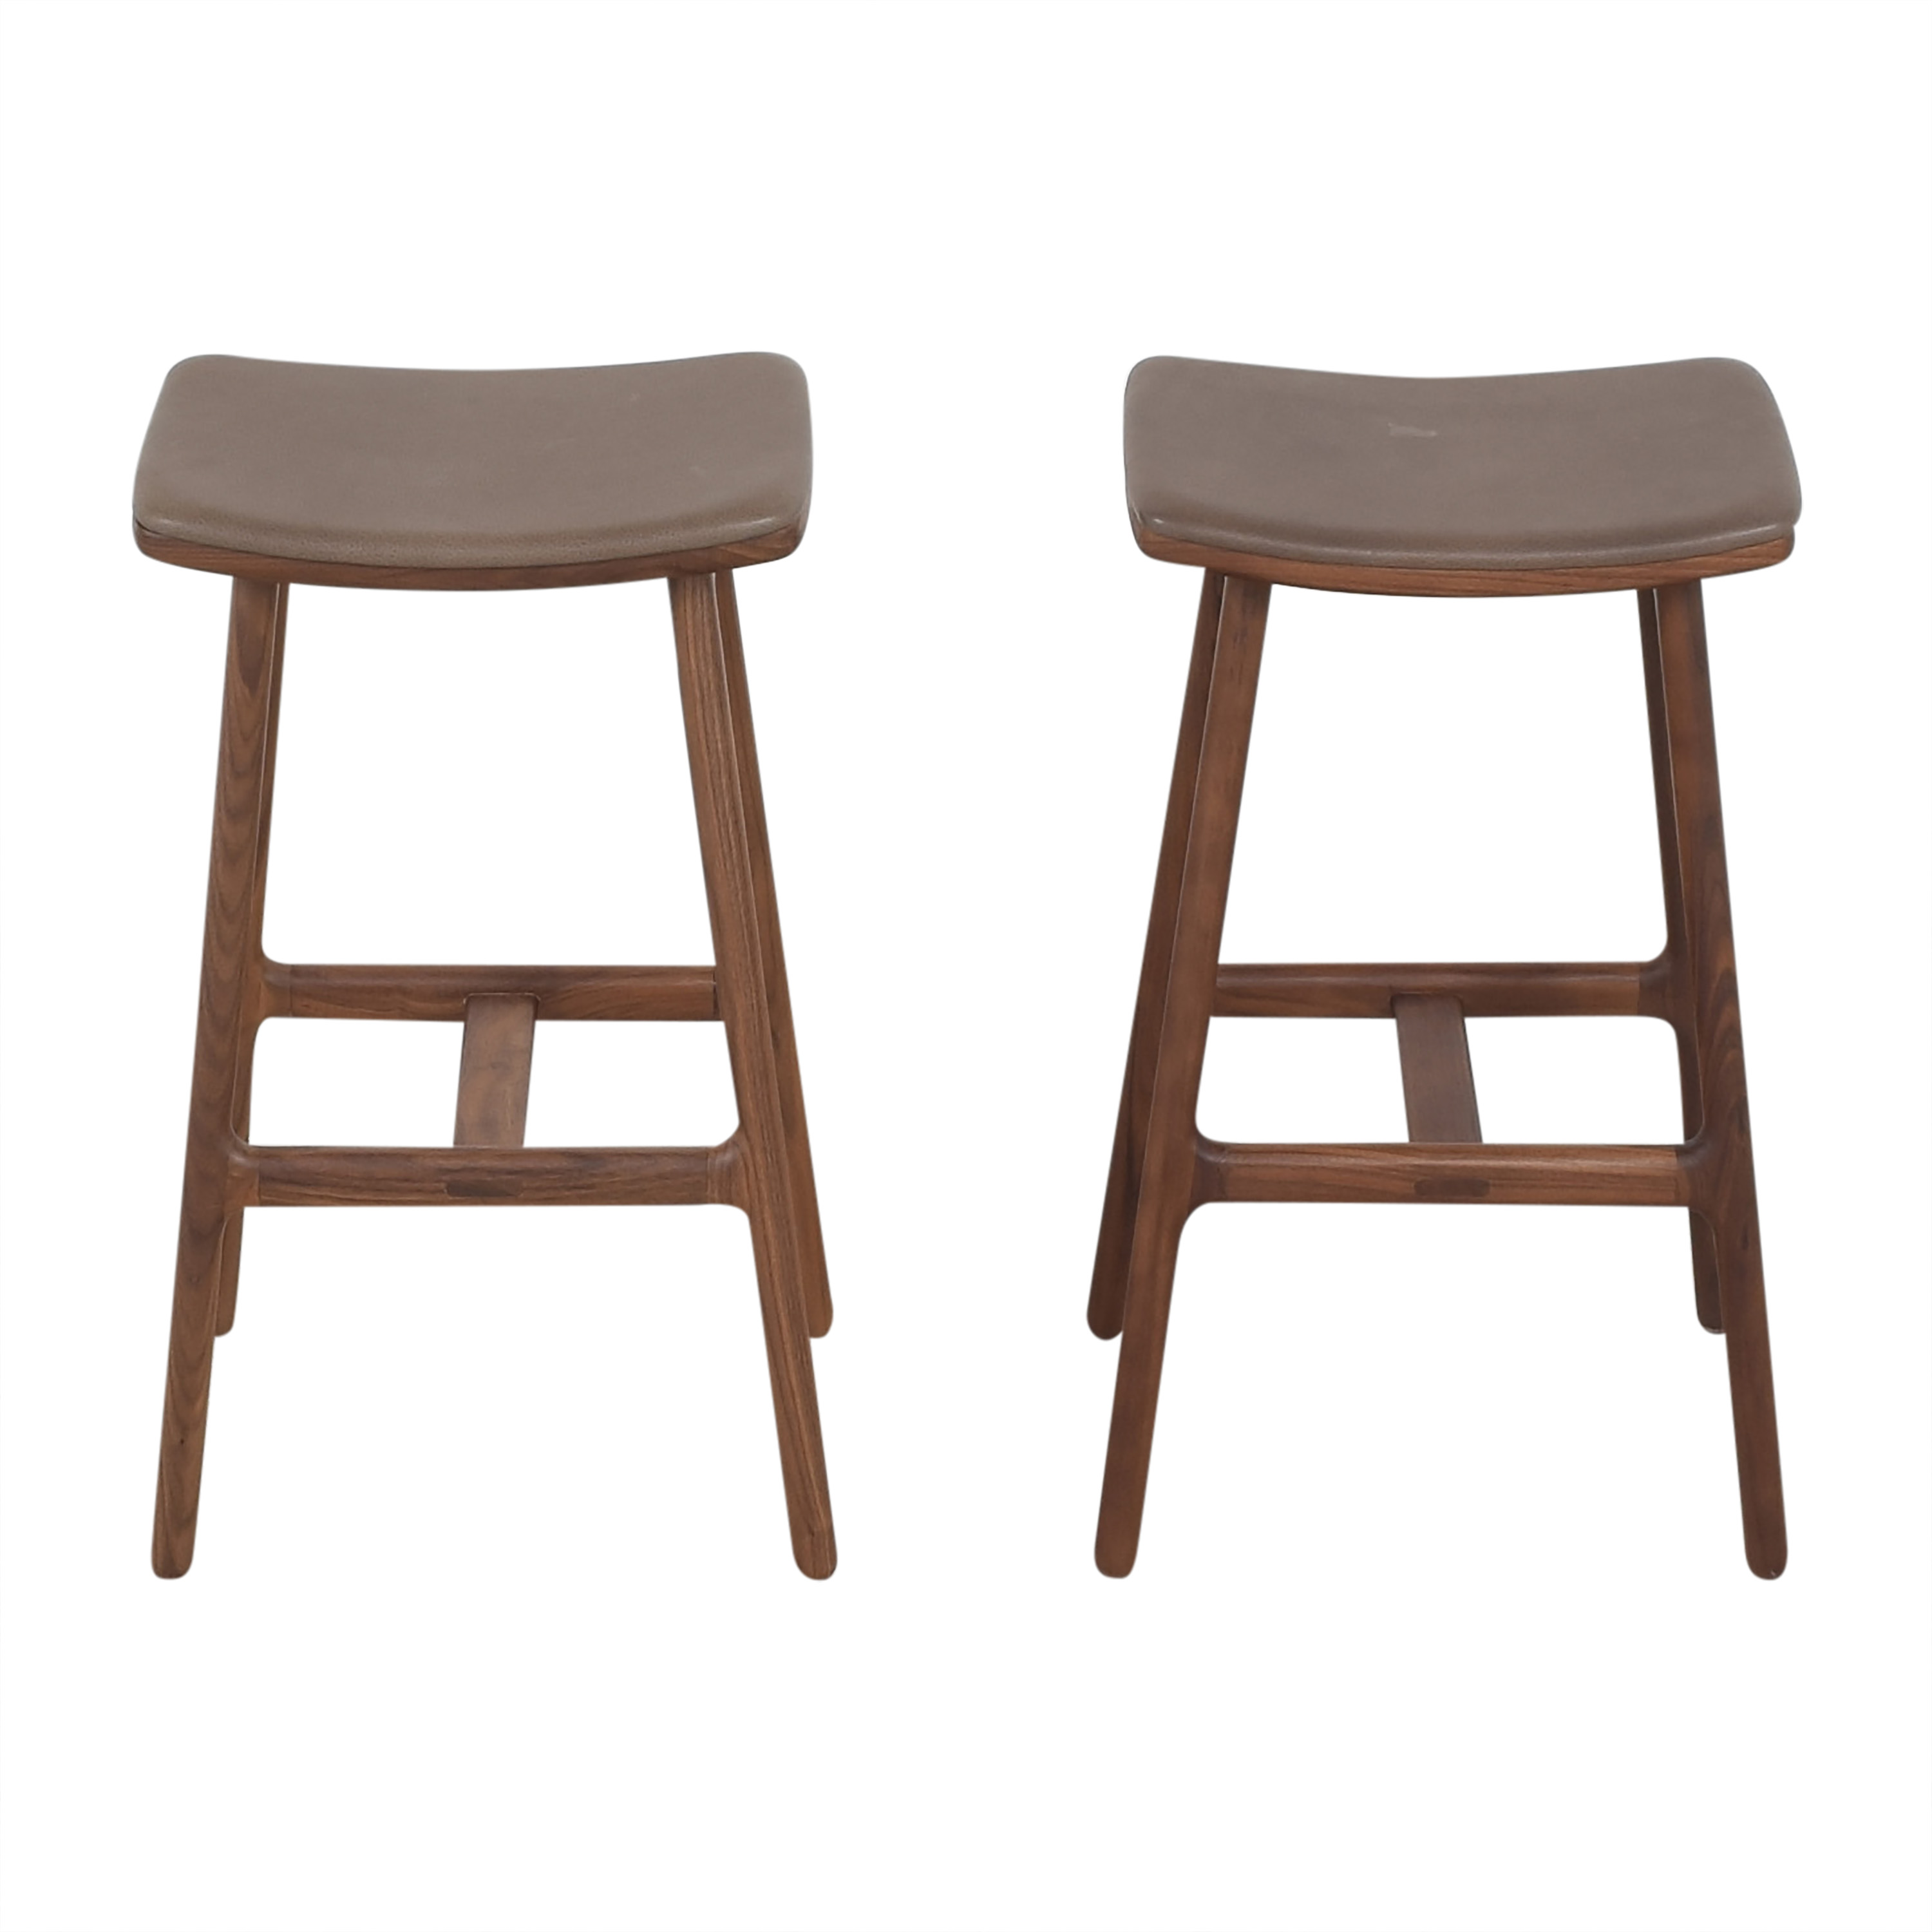 Article Esse Canyon Counter Stools / Chairs